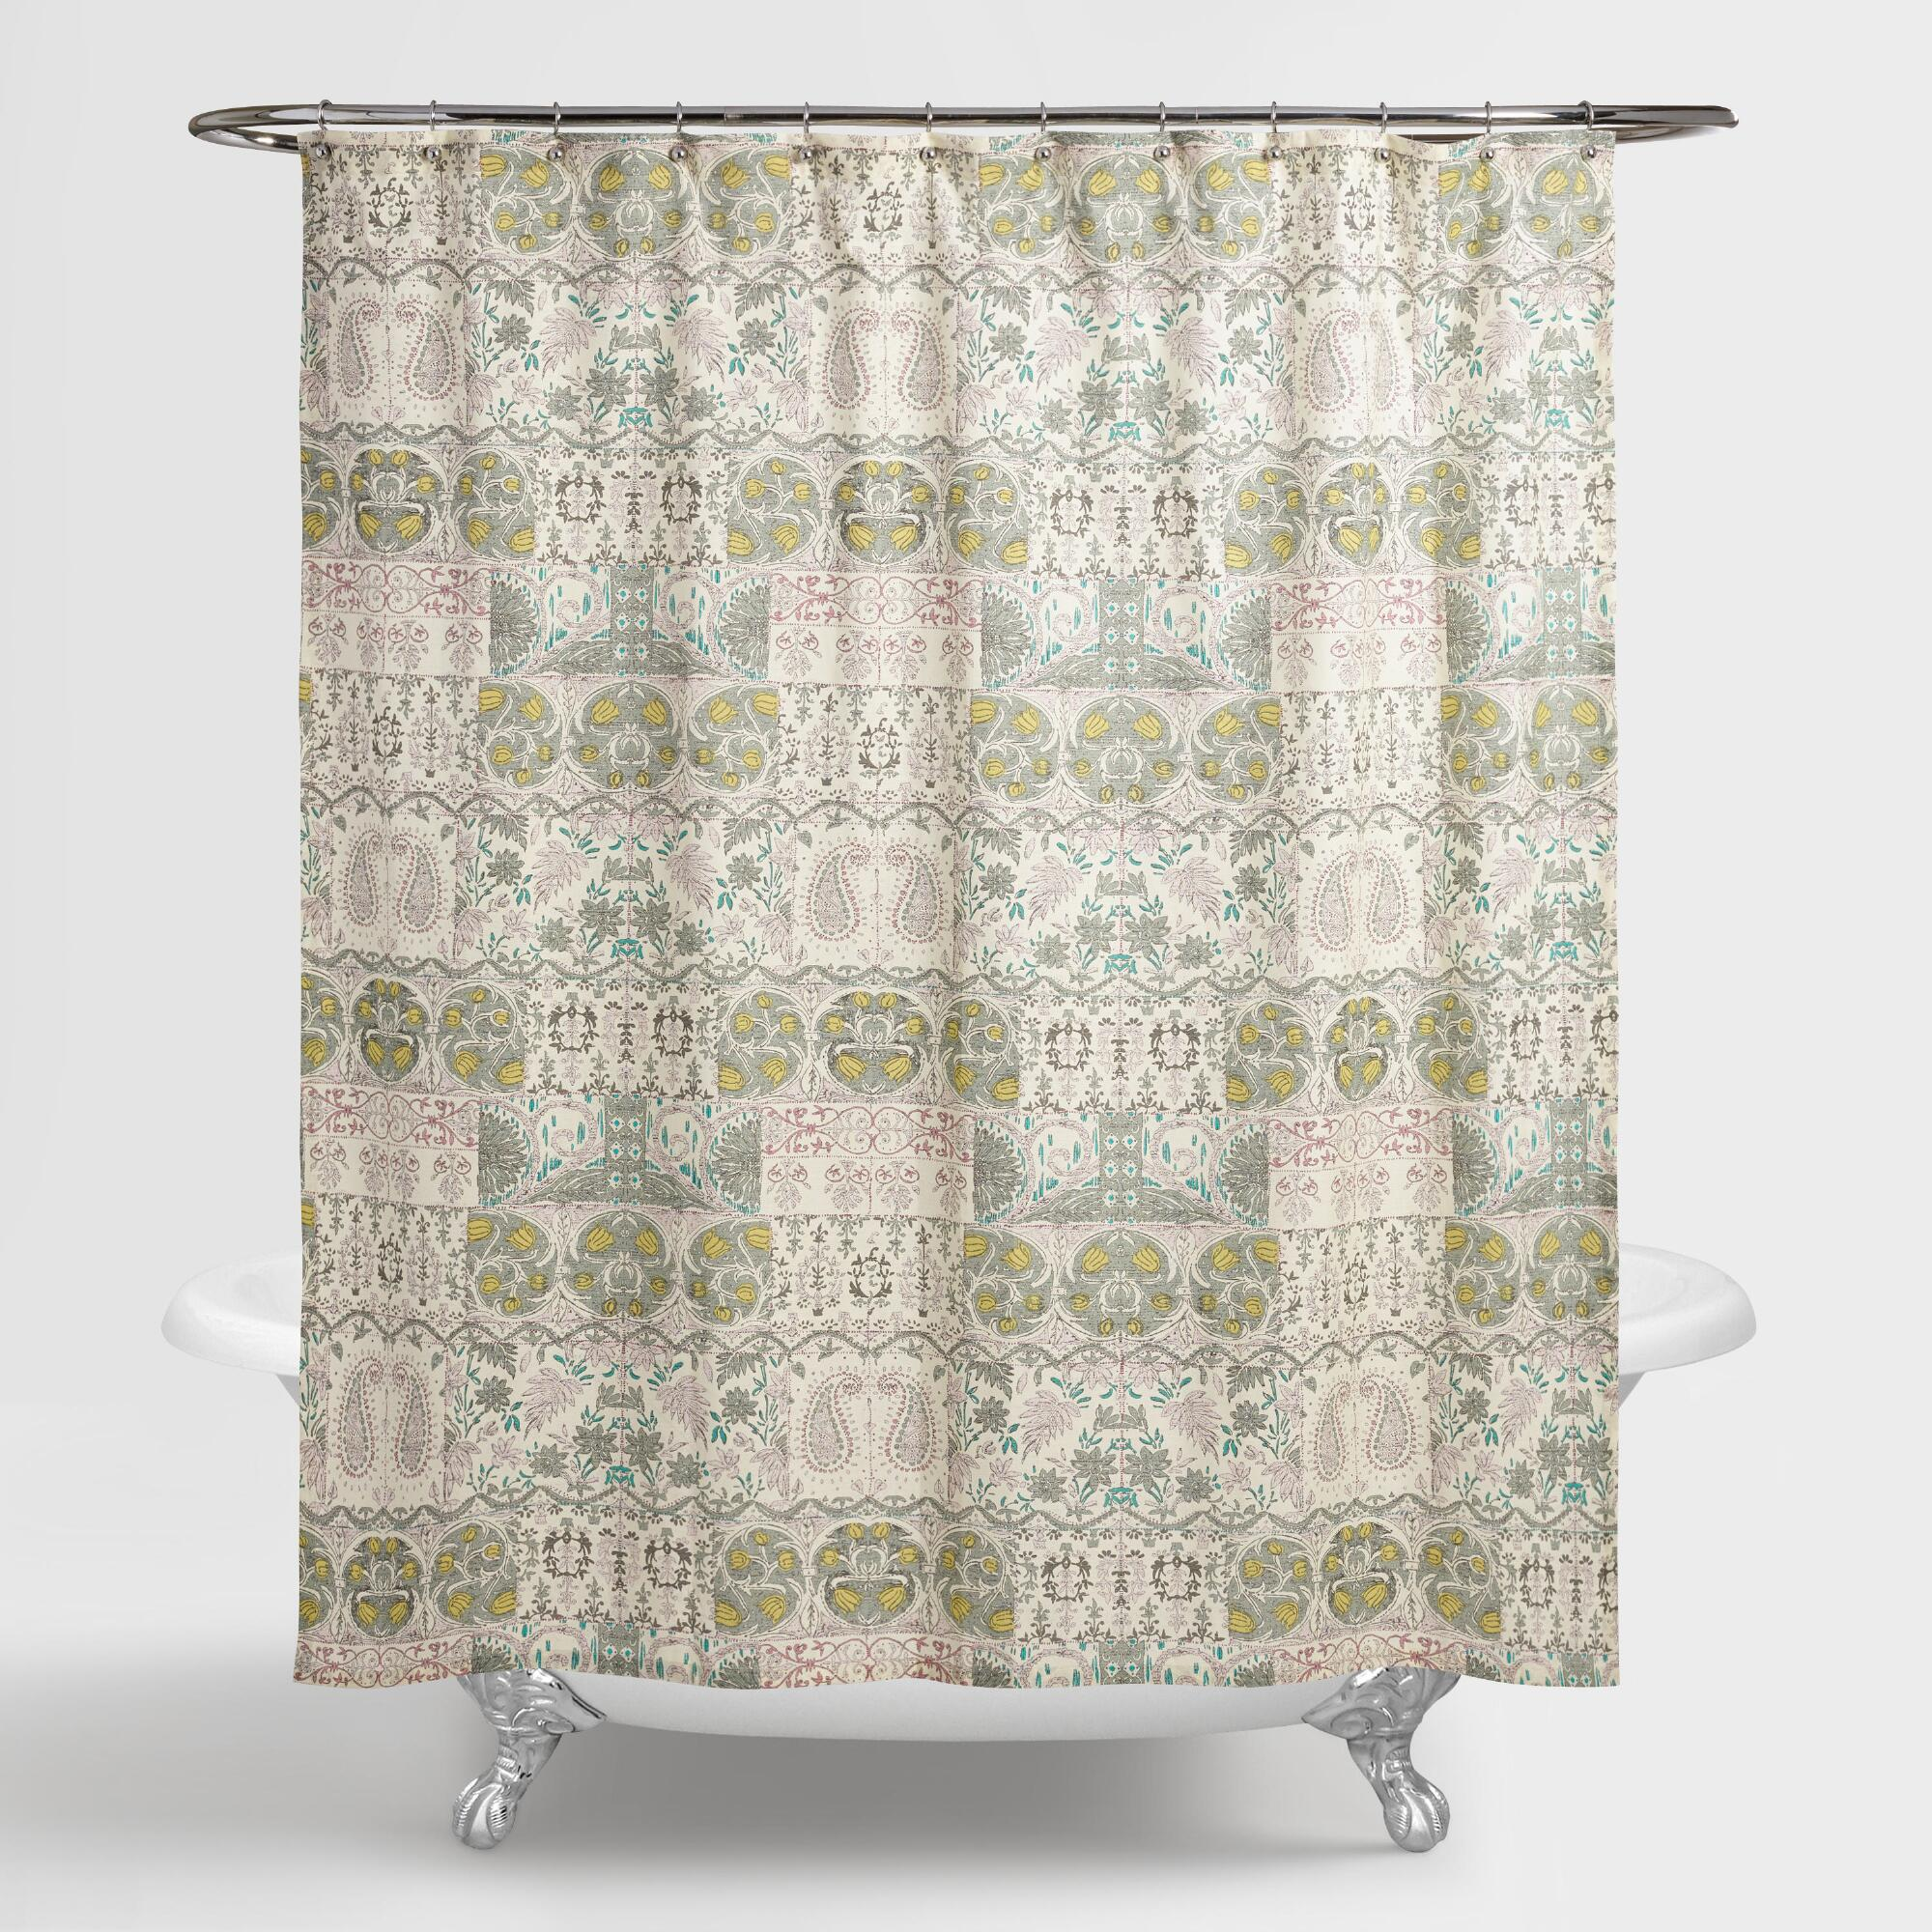 Green Paisley Cordelia Shower Curtain World Market